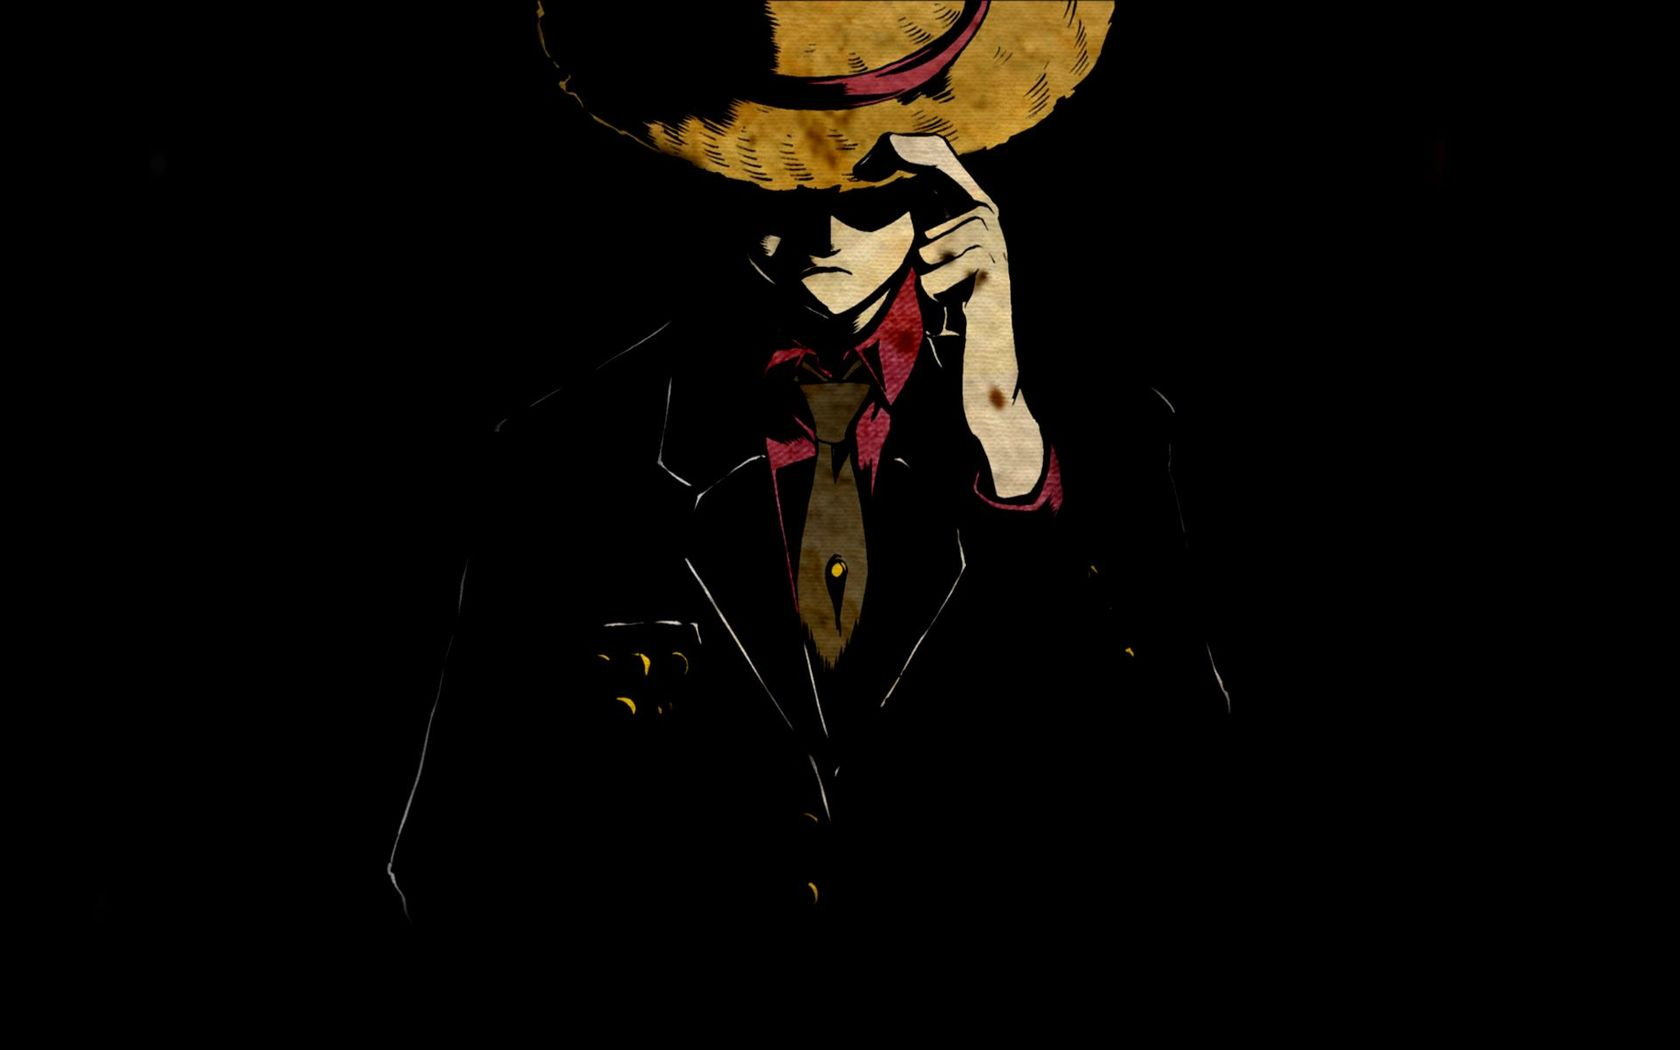 Wallpaper Luffy đẹp